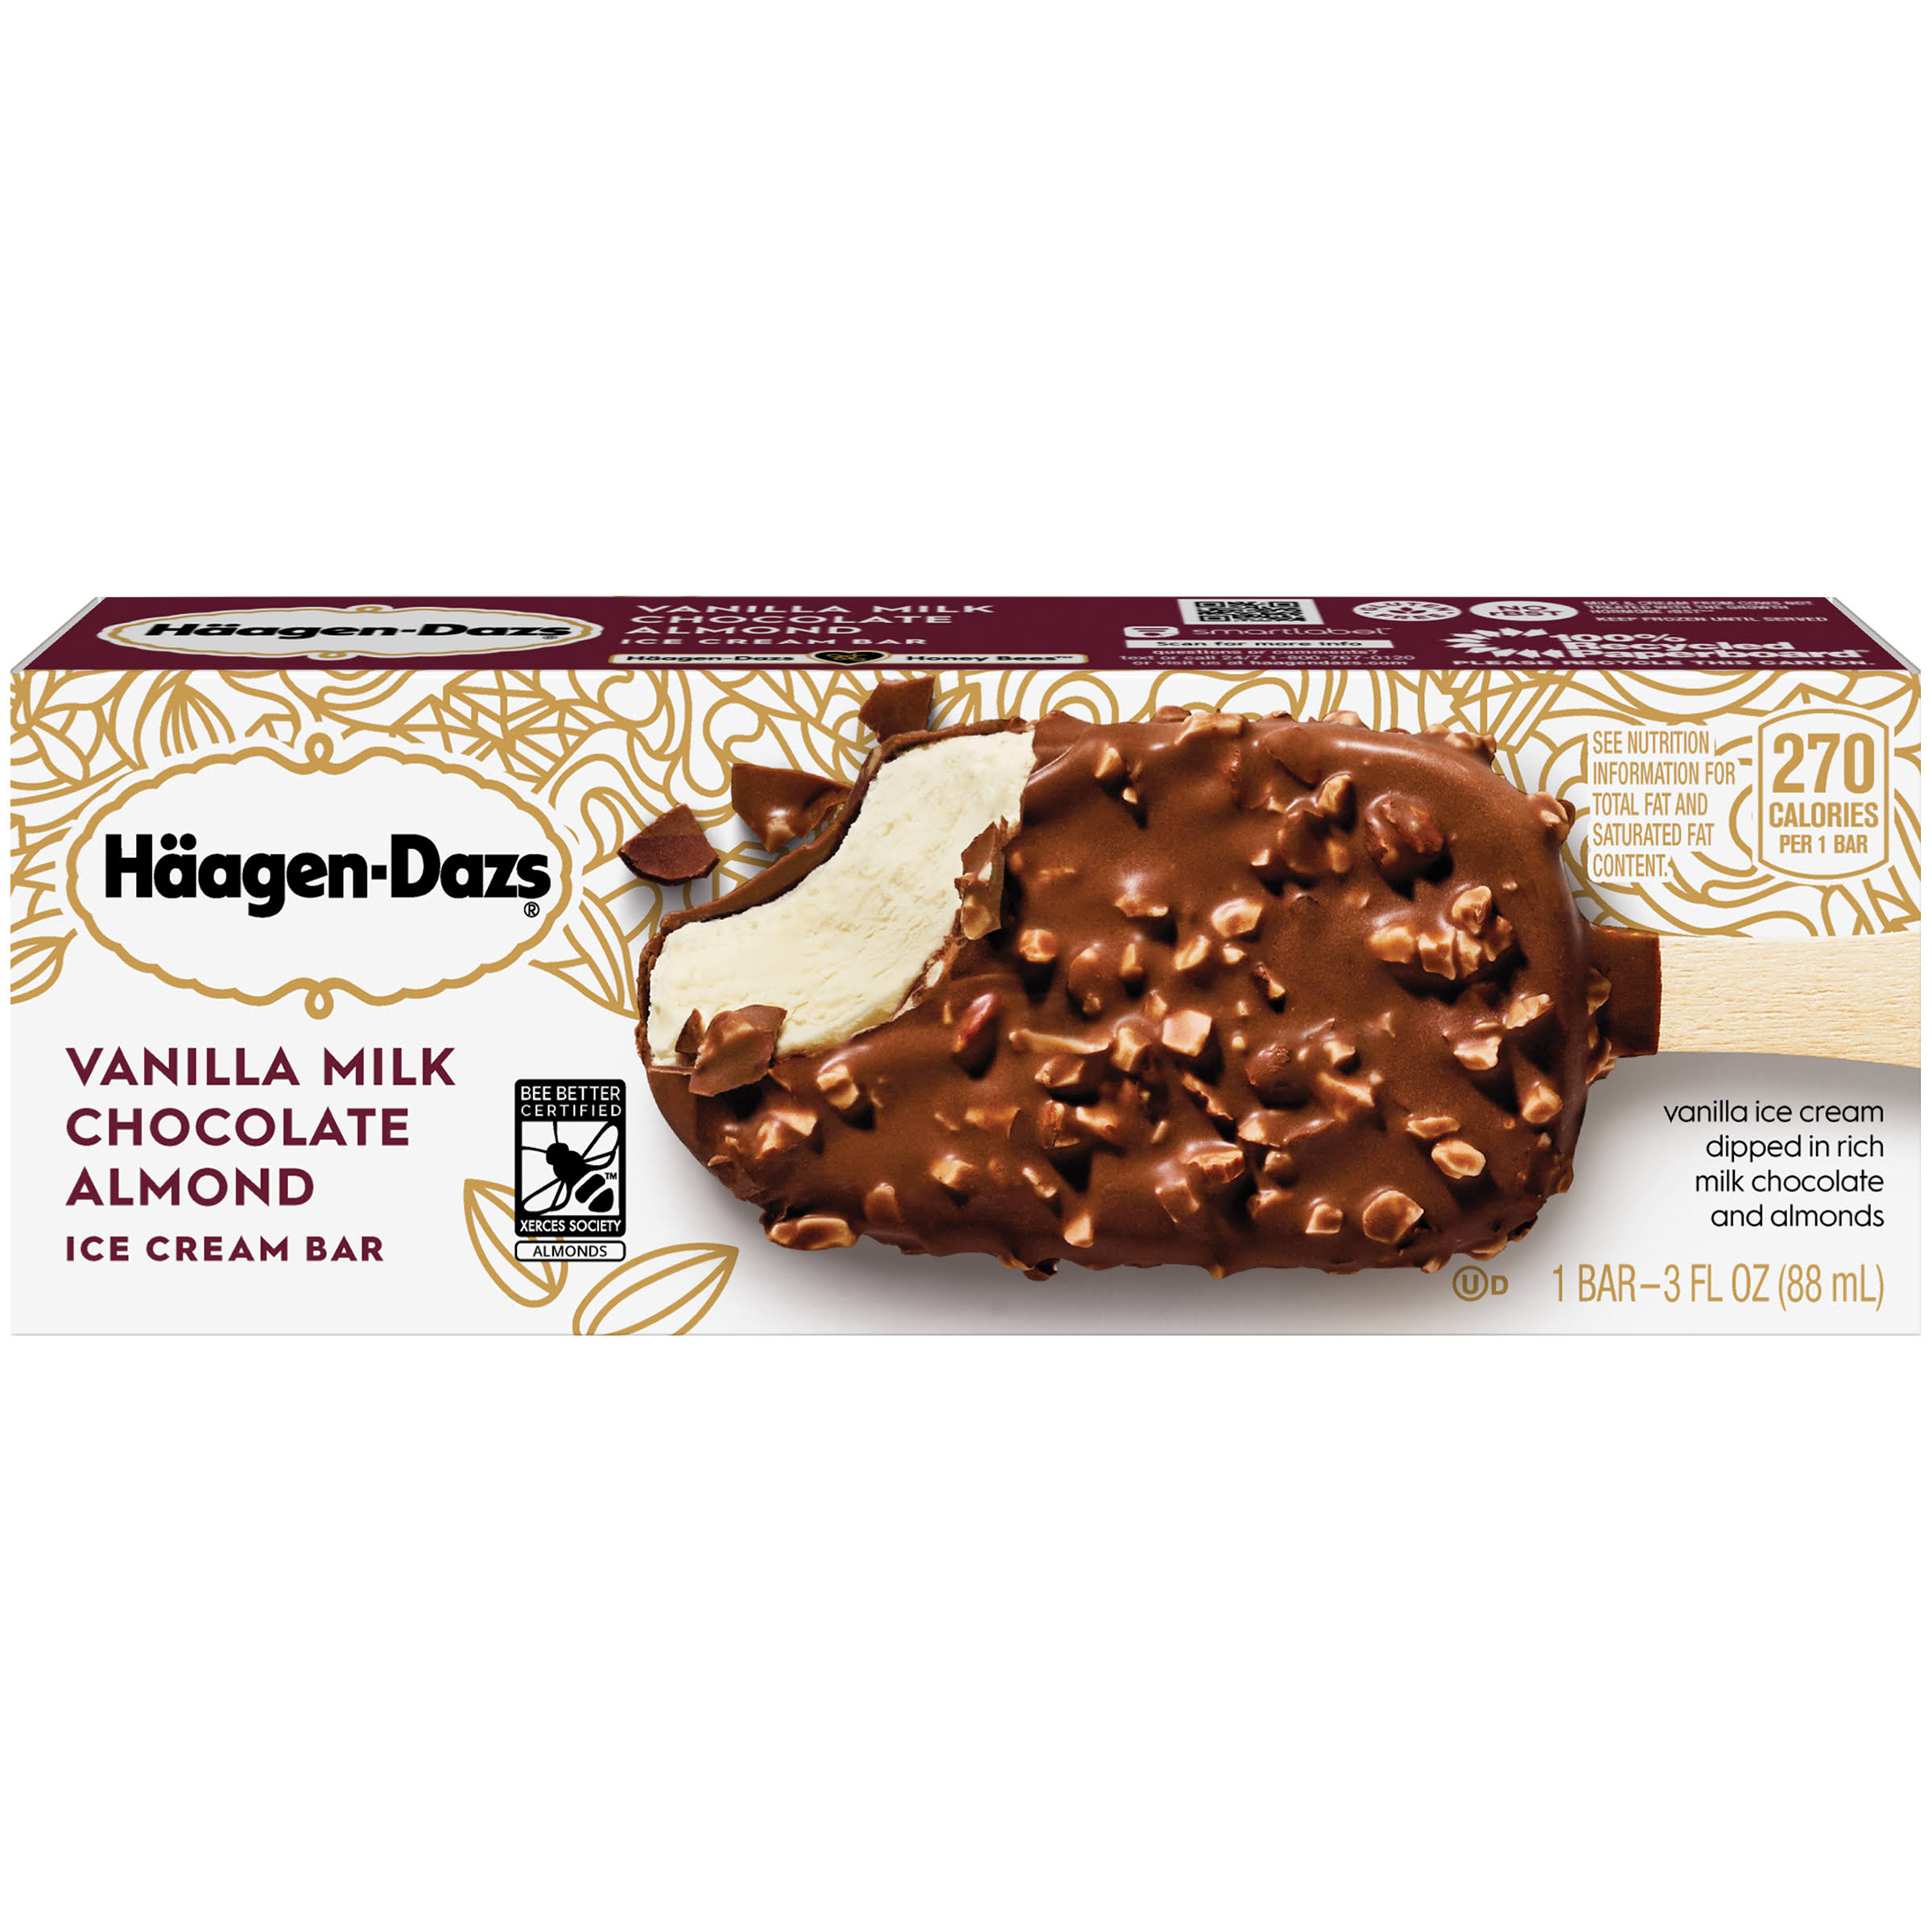 Haagen-Dazs Ice Cream Bar - Vanilla Milk Chocolate Almond, 3oz